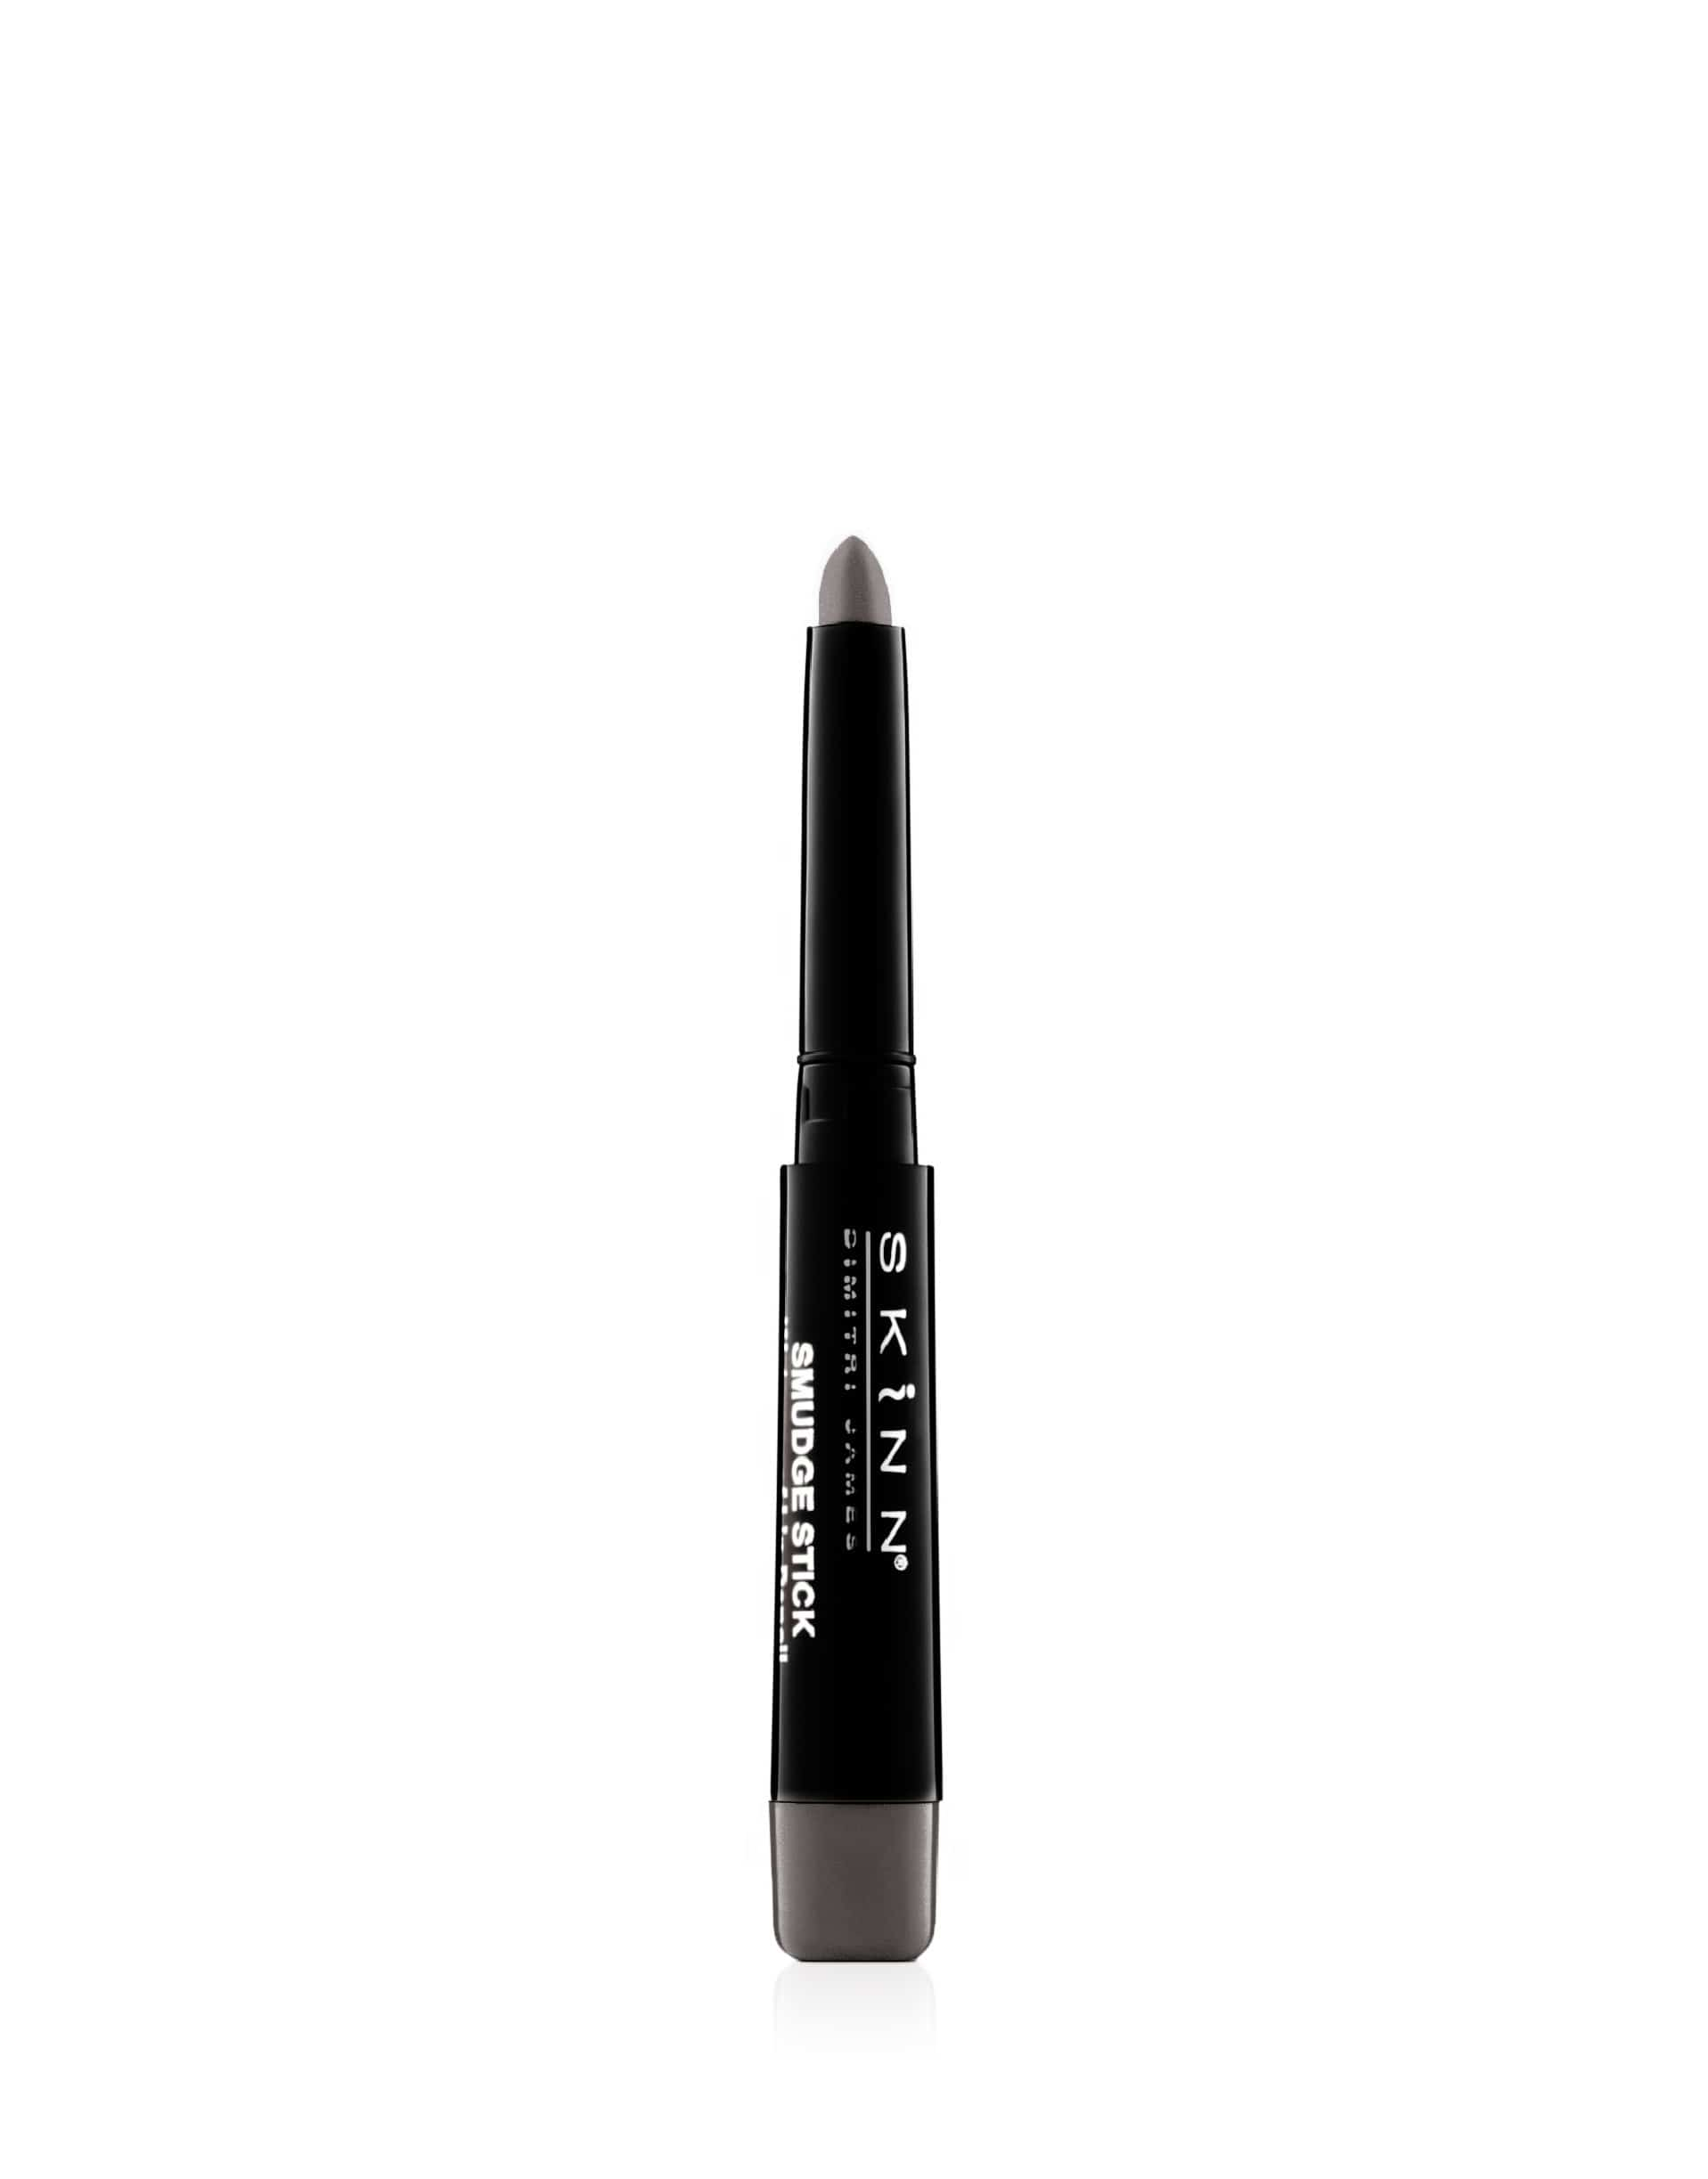 SKINN Waterproof Eye Pencil